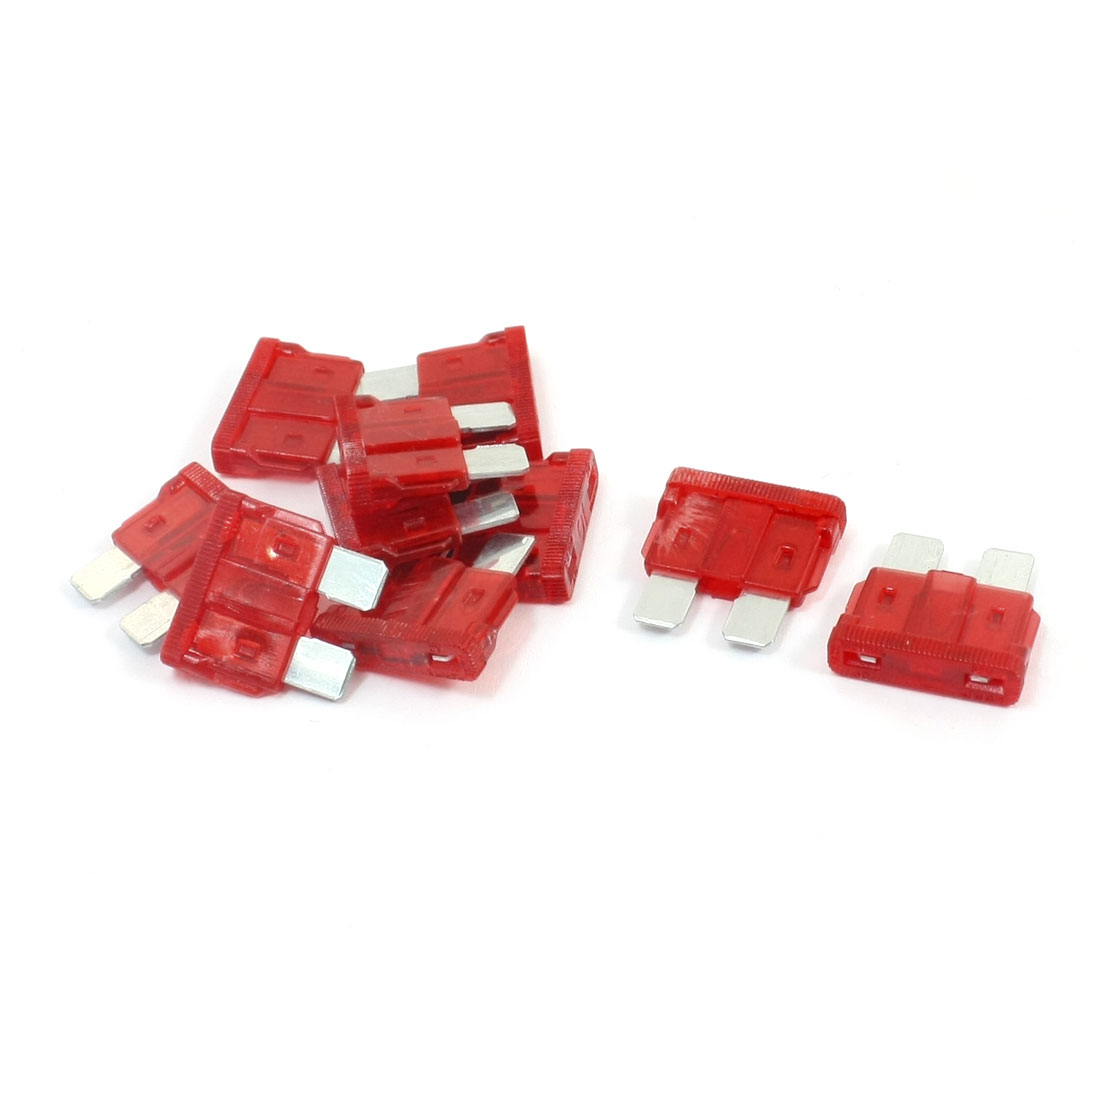 10 Pcs 32V 5A Auto Car Boat Motorcycle Large Size Blade ATC Fuse Red